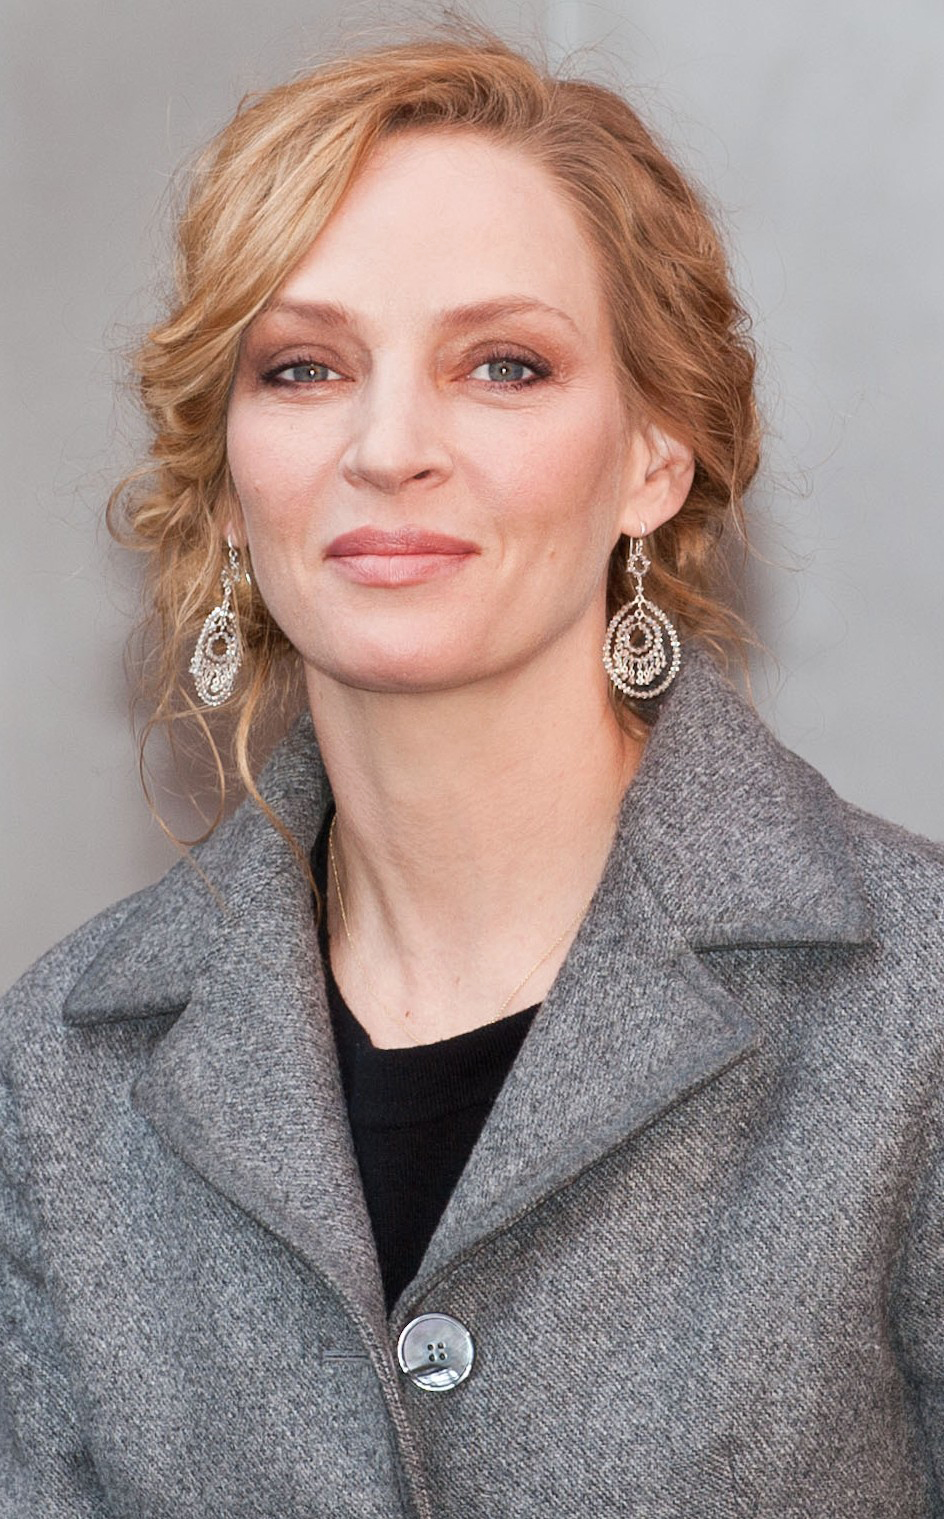 Photo credit:Siebbi (Uma Thurman) [CC BY 3.0 (https://creativecommons.org/licenses/by/3.0)], via Wikimedia Commons